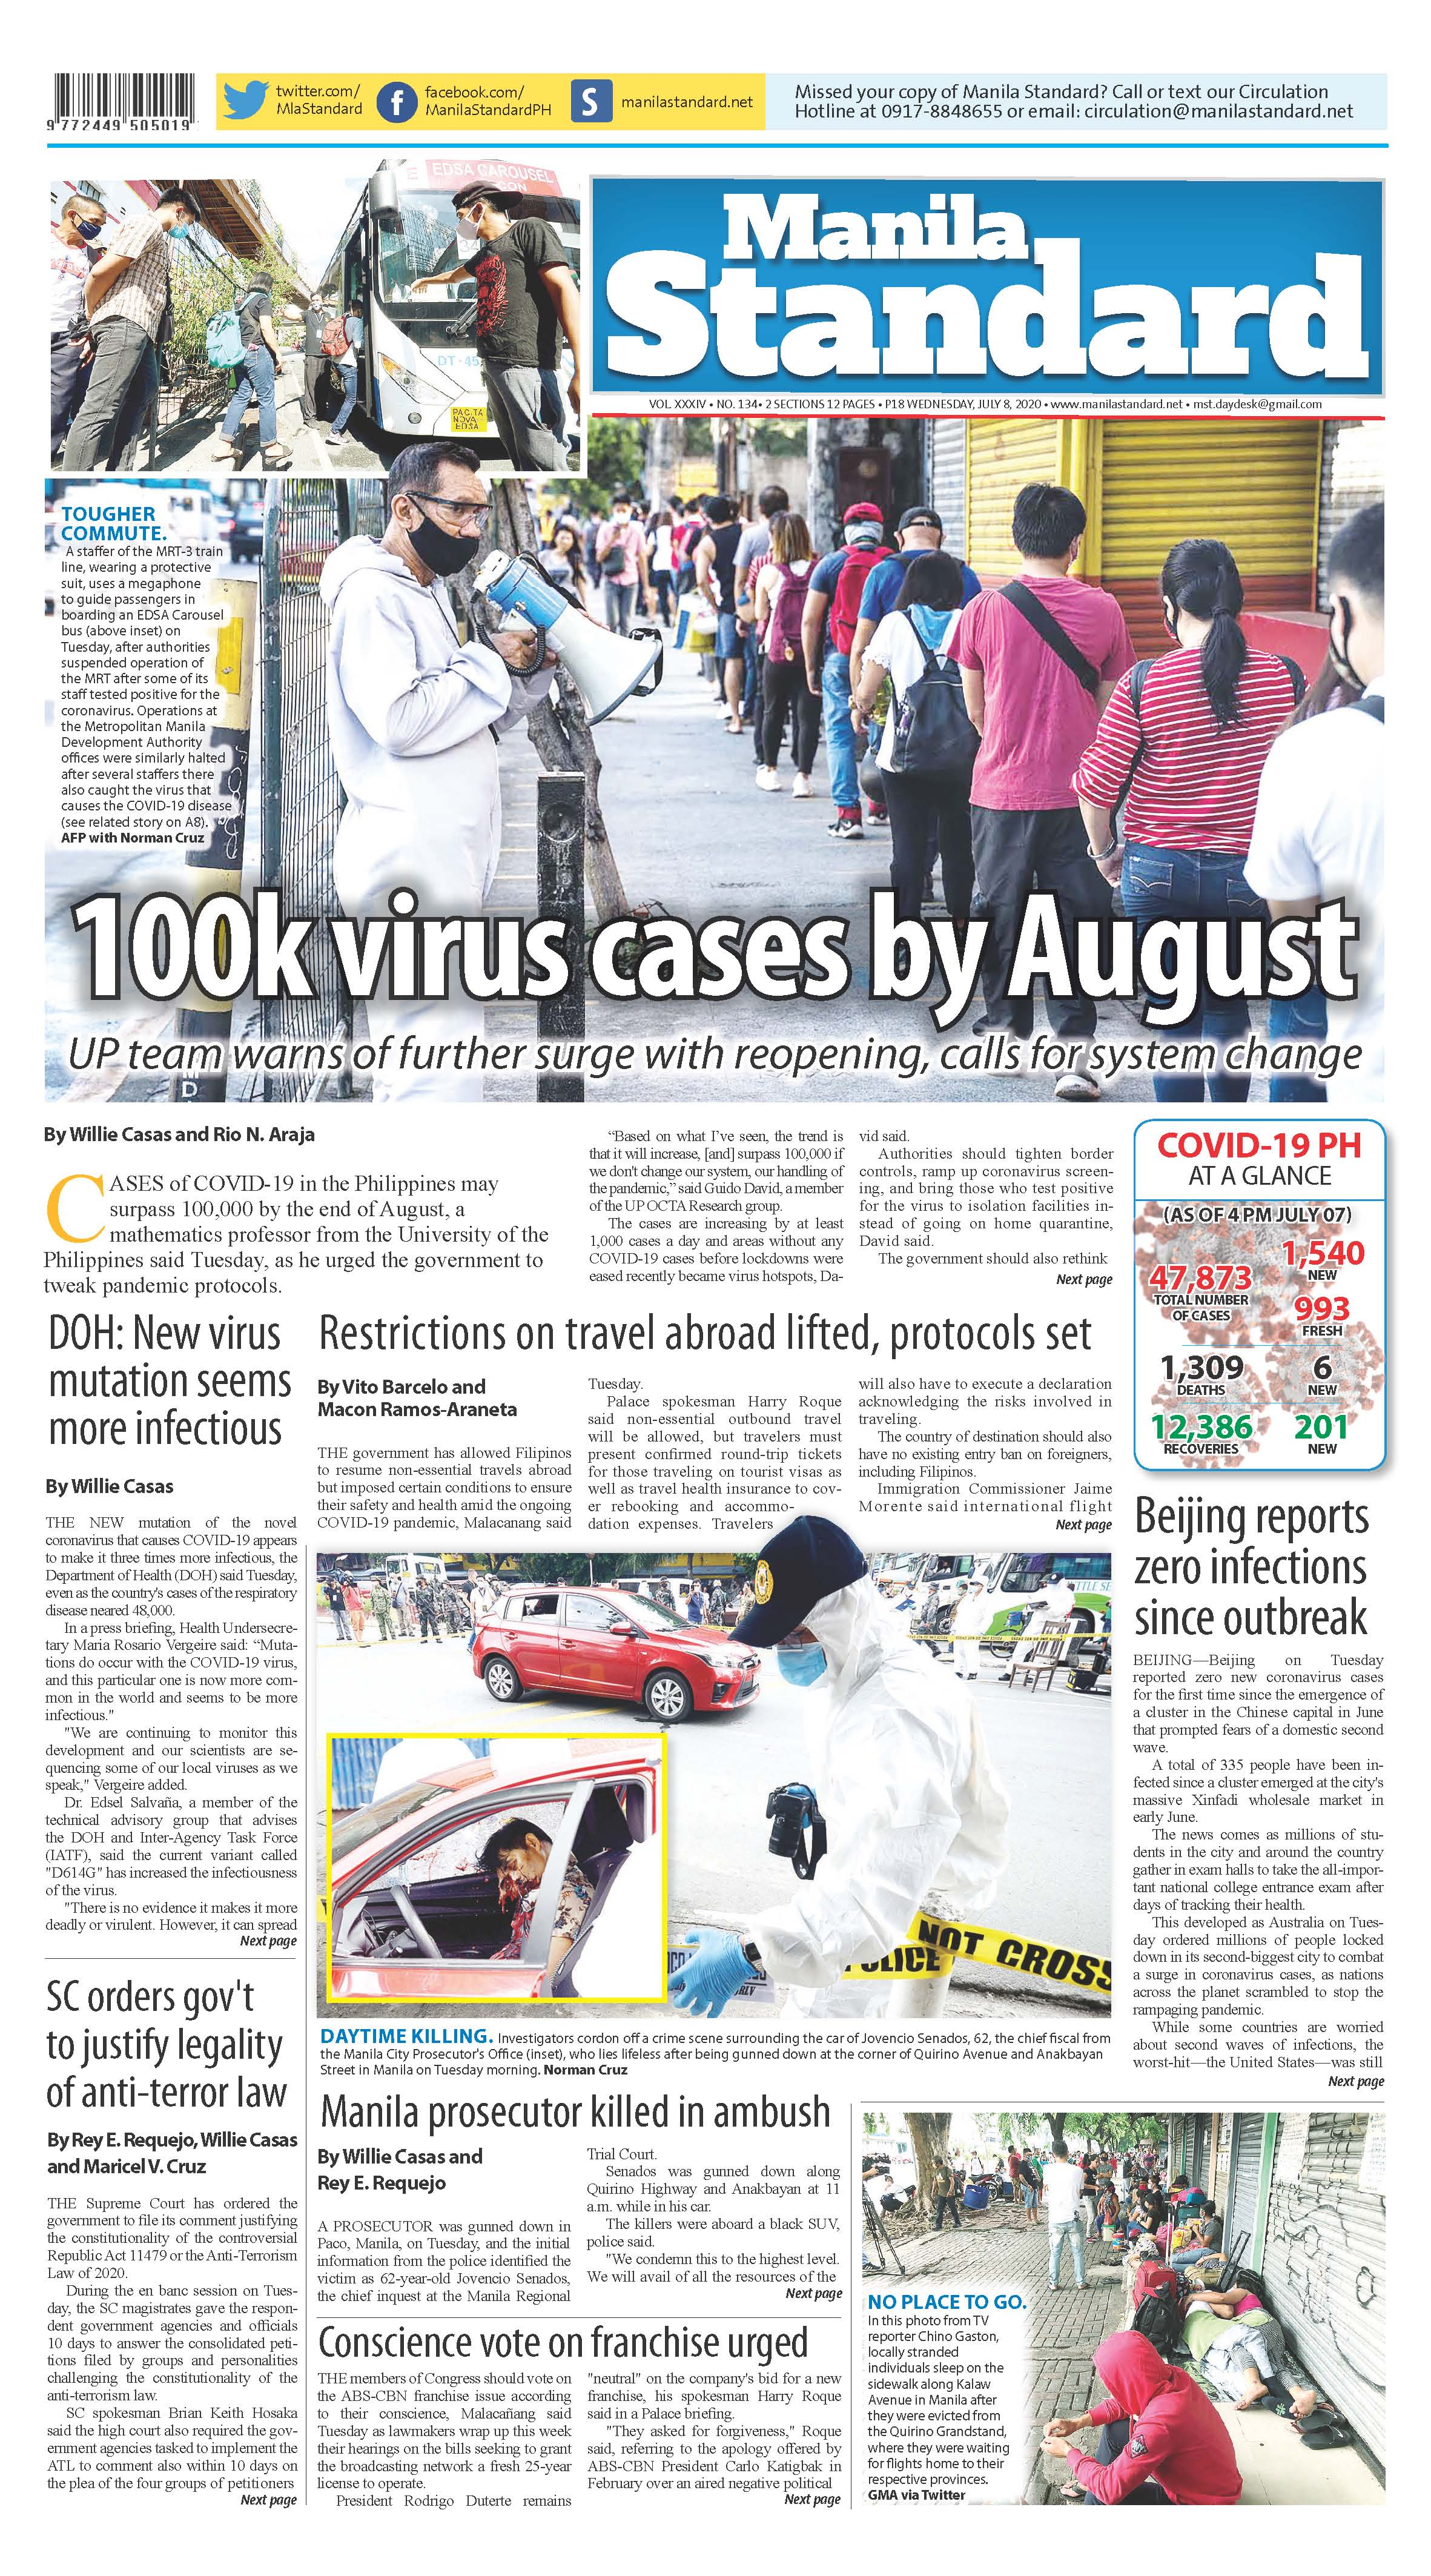 Wednesday Print Edition (07/08/2020)